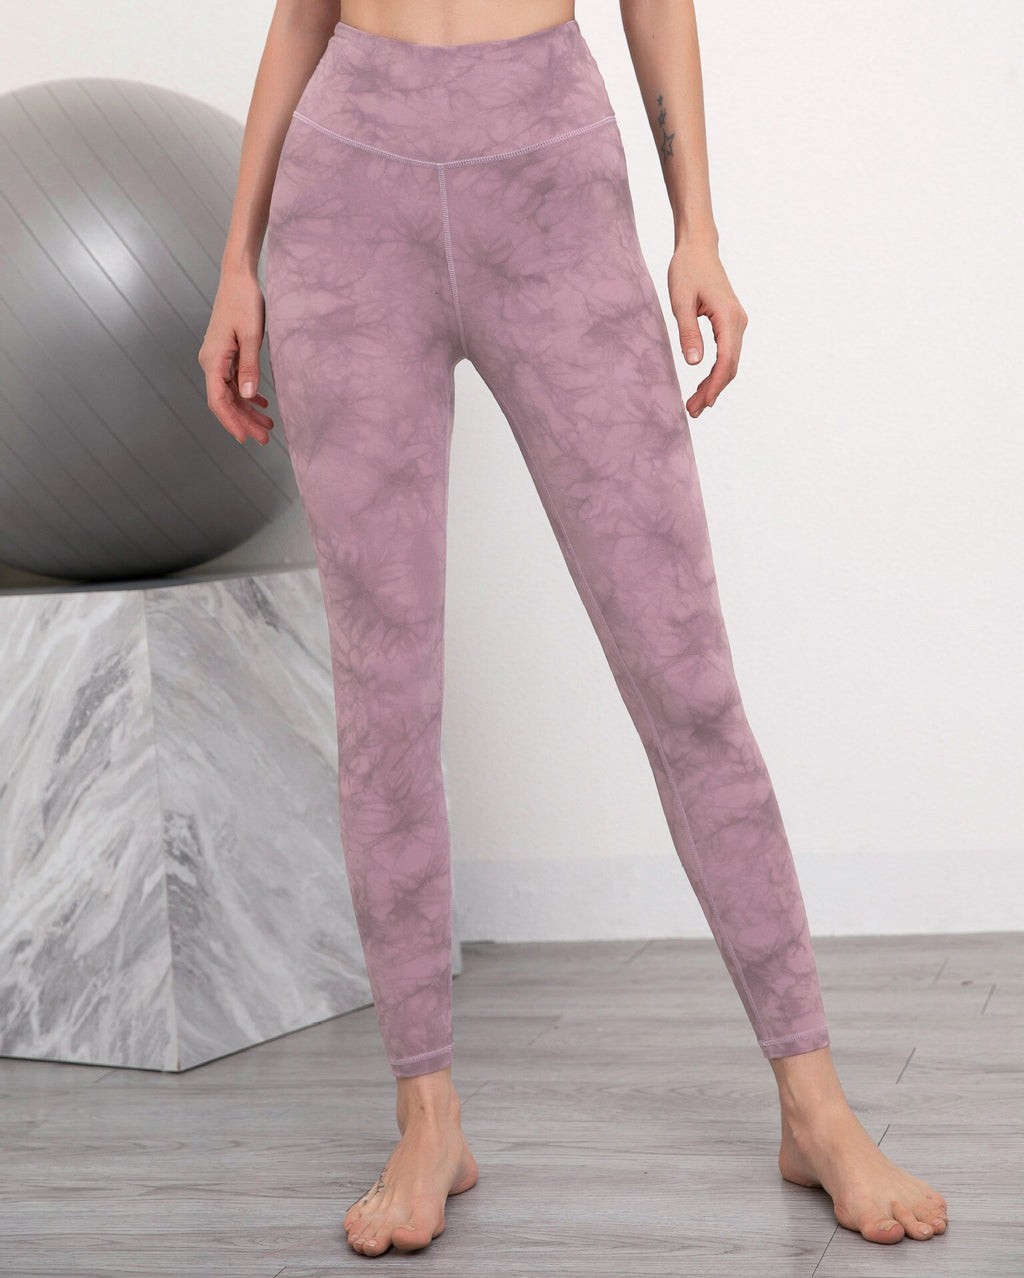 Astoria LUXE CLOUD Scrunch Legging - Purple